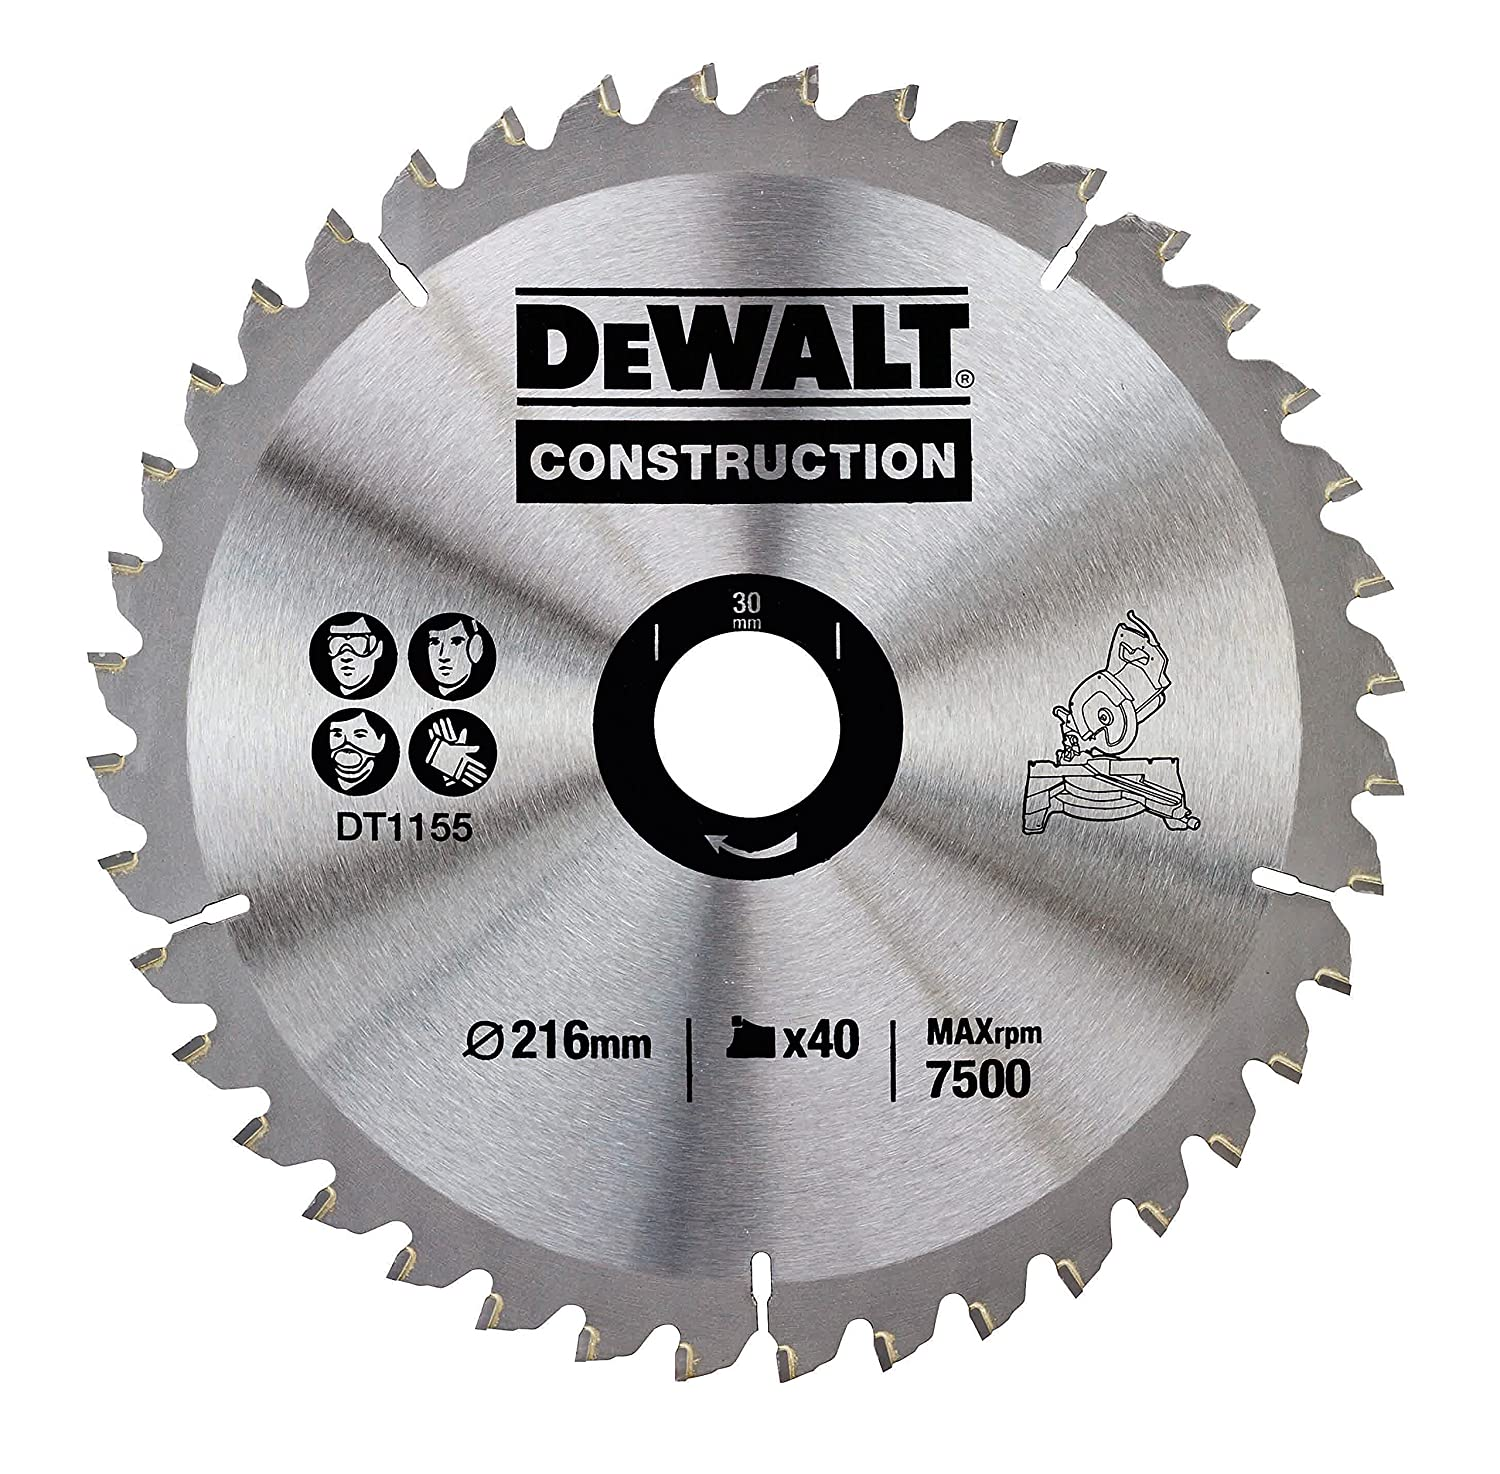 Dewalt dt1155qz 216 x 30mm x 40 tooth circular saw blade dewalt dt1155qz 216 x 30mm x 40 tooth circular saw blade construction amazon diy tools greentooth Choice Image